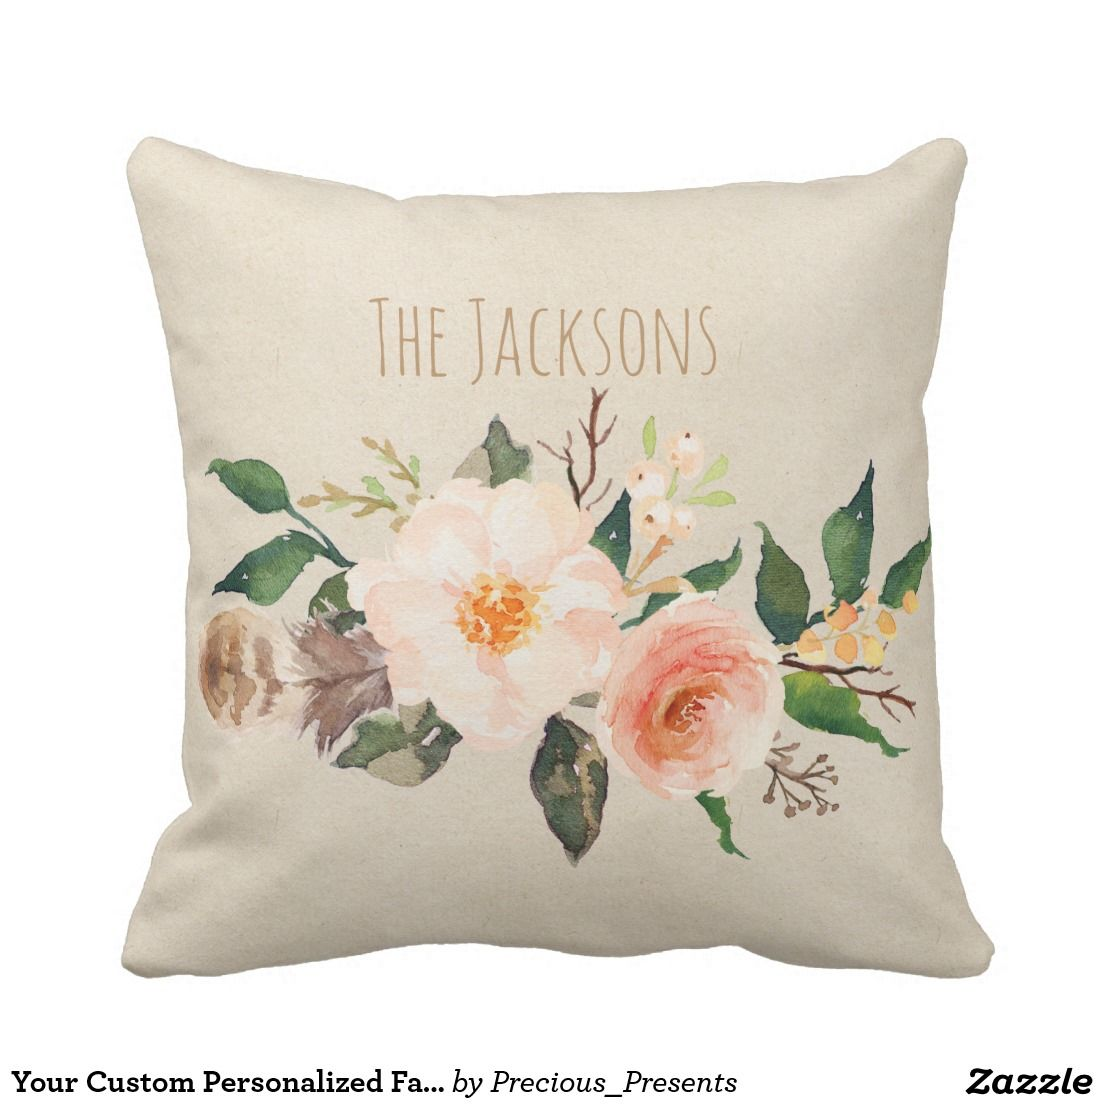 Your Custom Personalized Family Outdoor Pillow